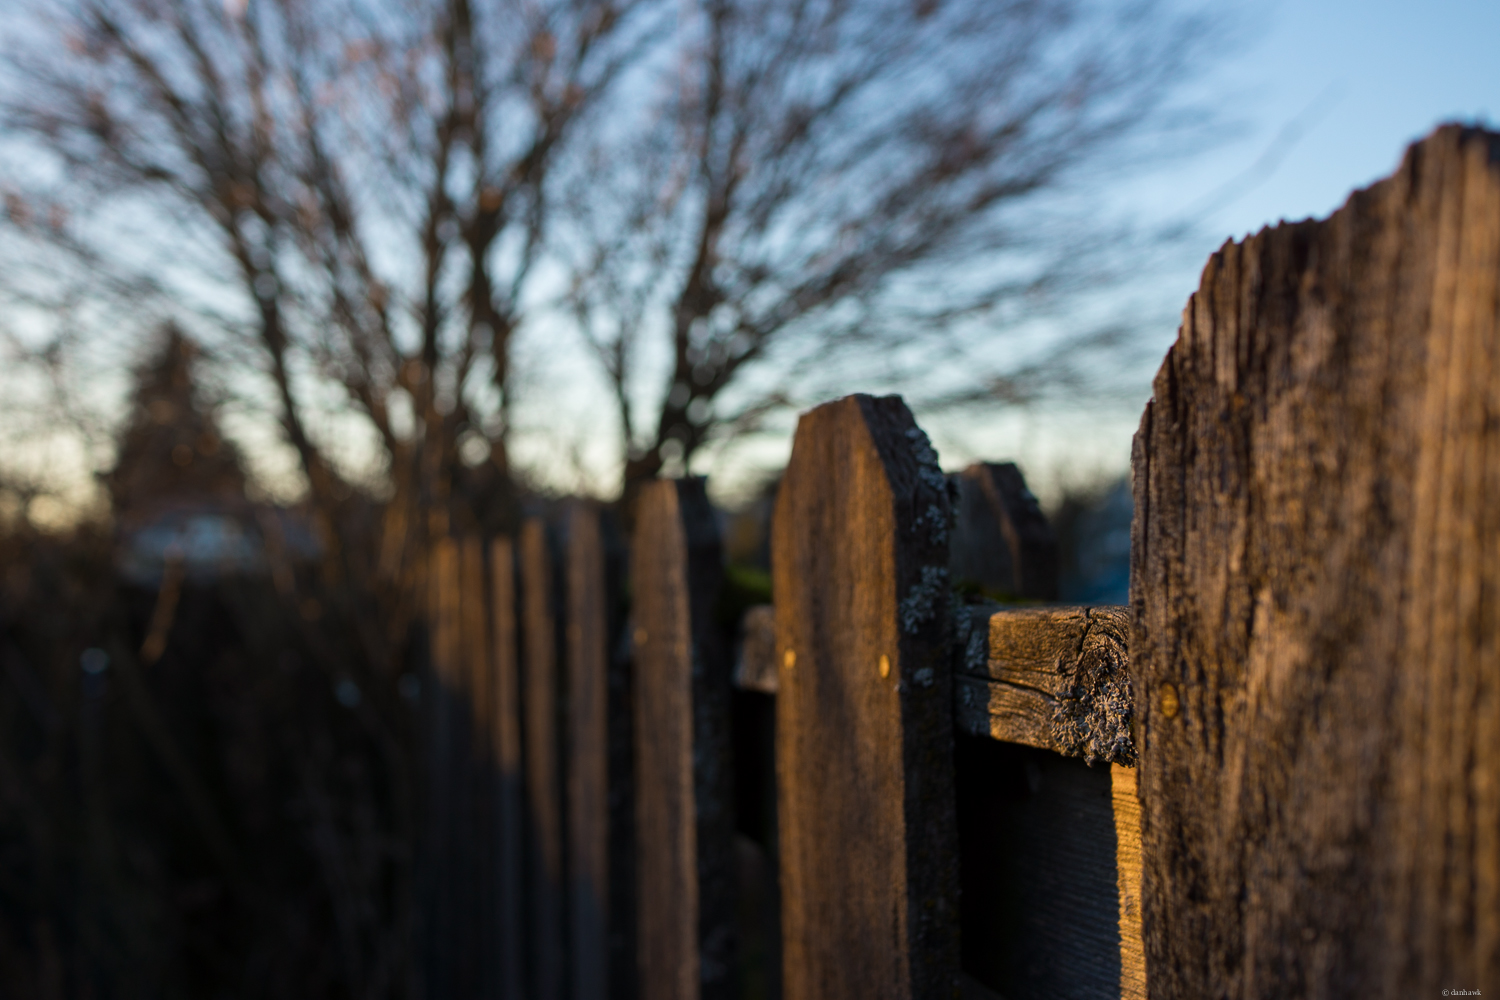 Old Fence | 24mm, f/3.5, ISO 100, 1/160